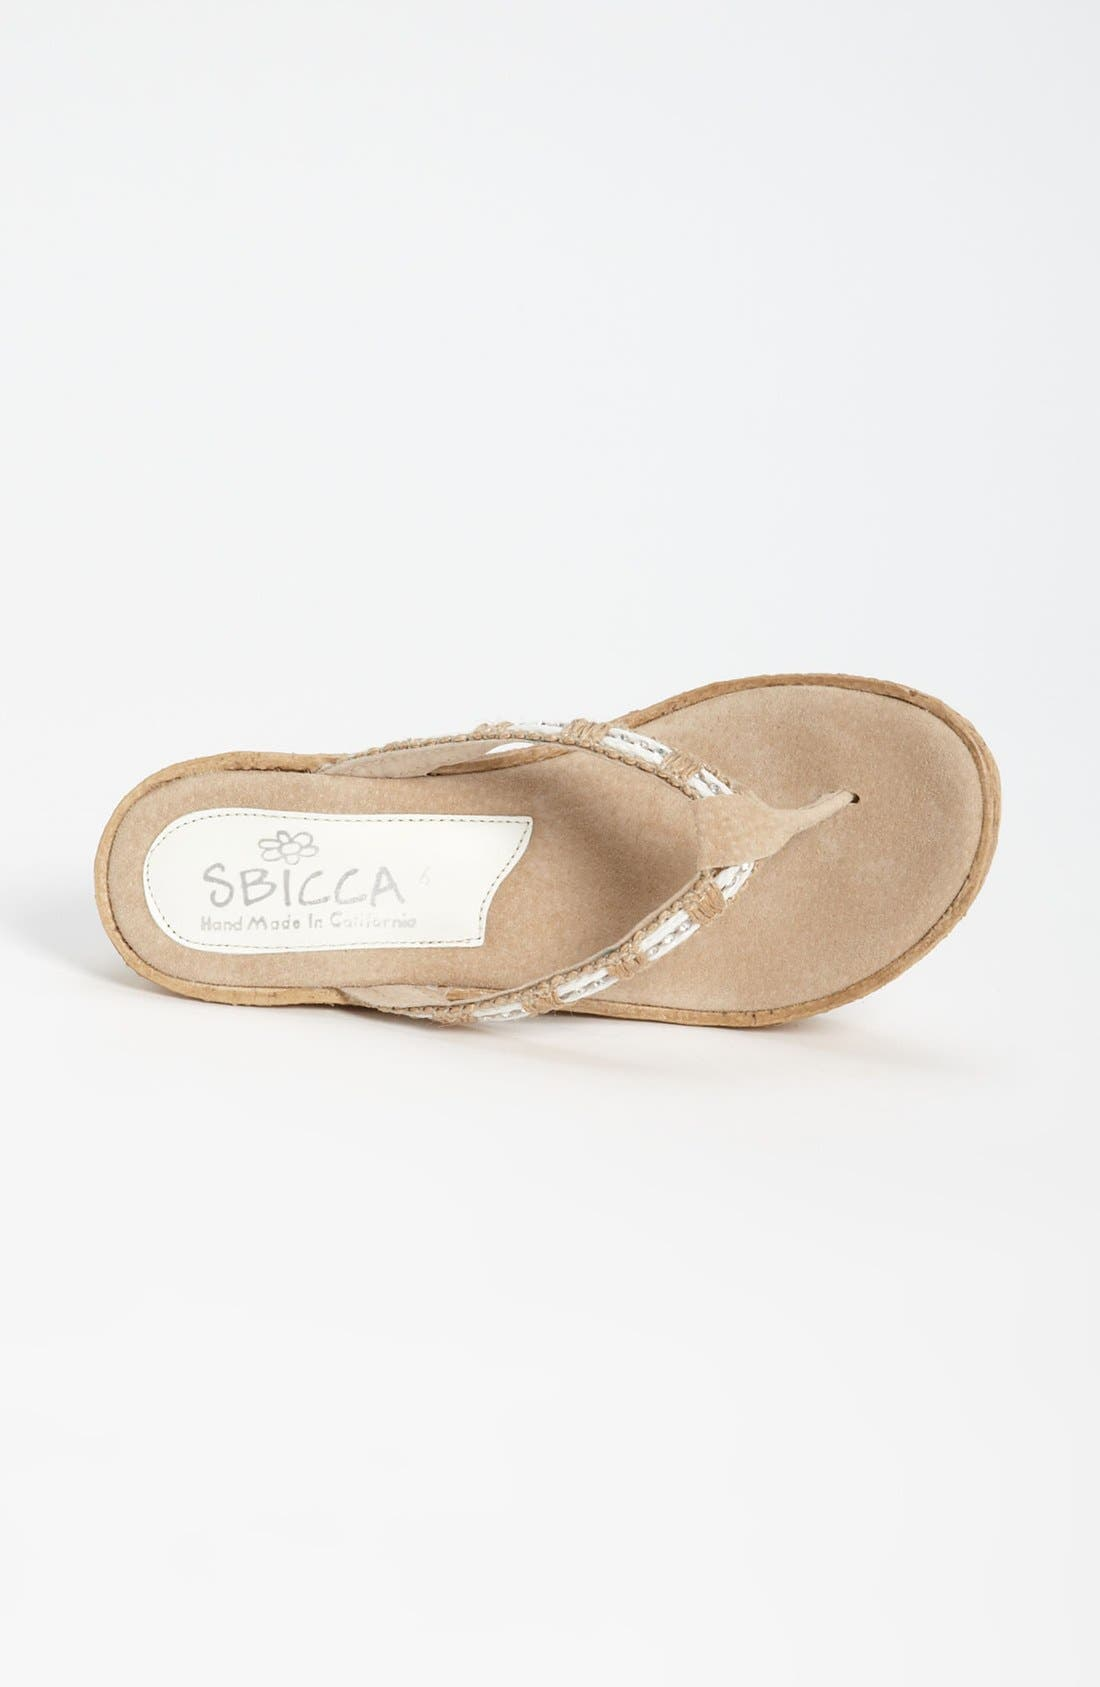 Alternate Image 3  - Sbicca 'Cora' Wedge Sandal